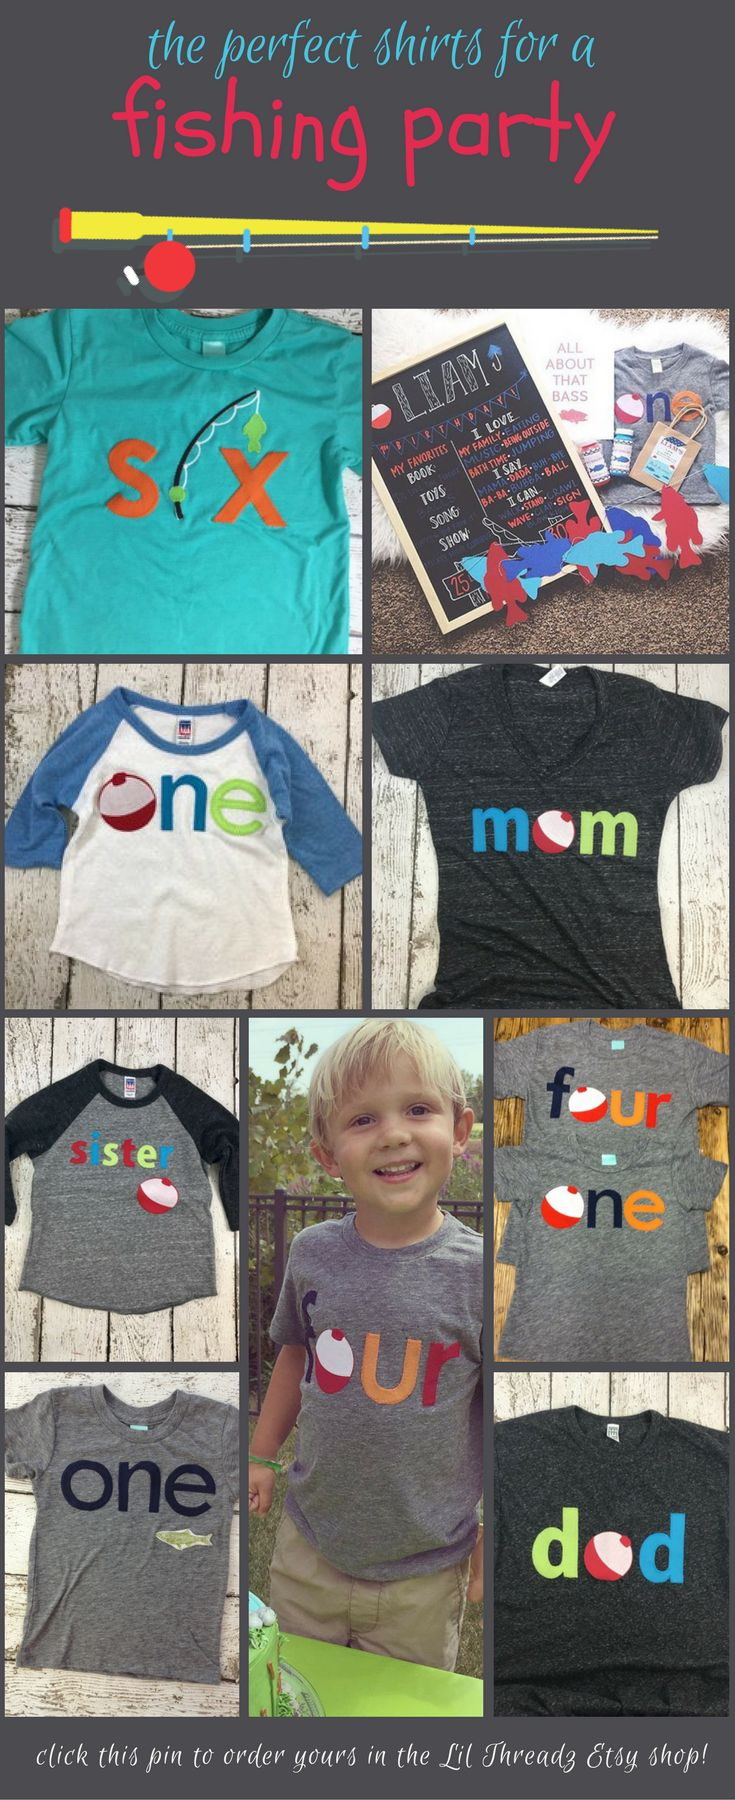 Lil Threadz fishing birthday shirts can be customized completely to fit your fishing birthday theme. Get one for the birthday boy or girl or get a bunch for the whole family. Come browse the selections in our Etsy shop, or request a completely custom design.